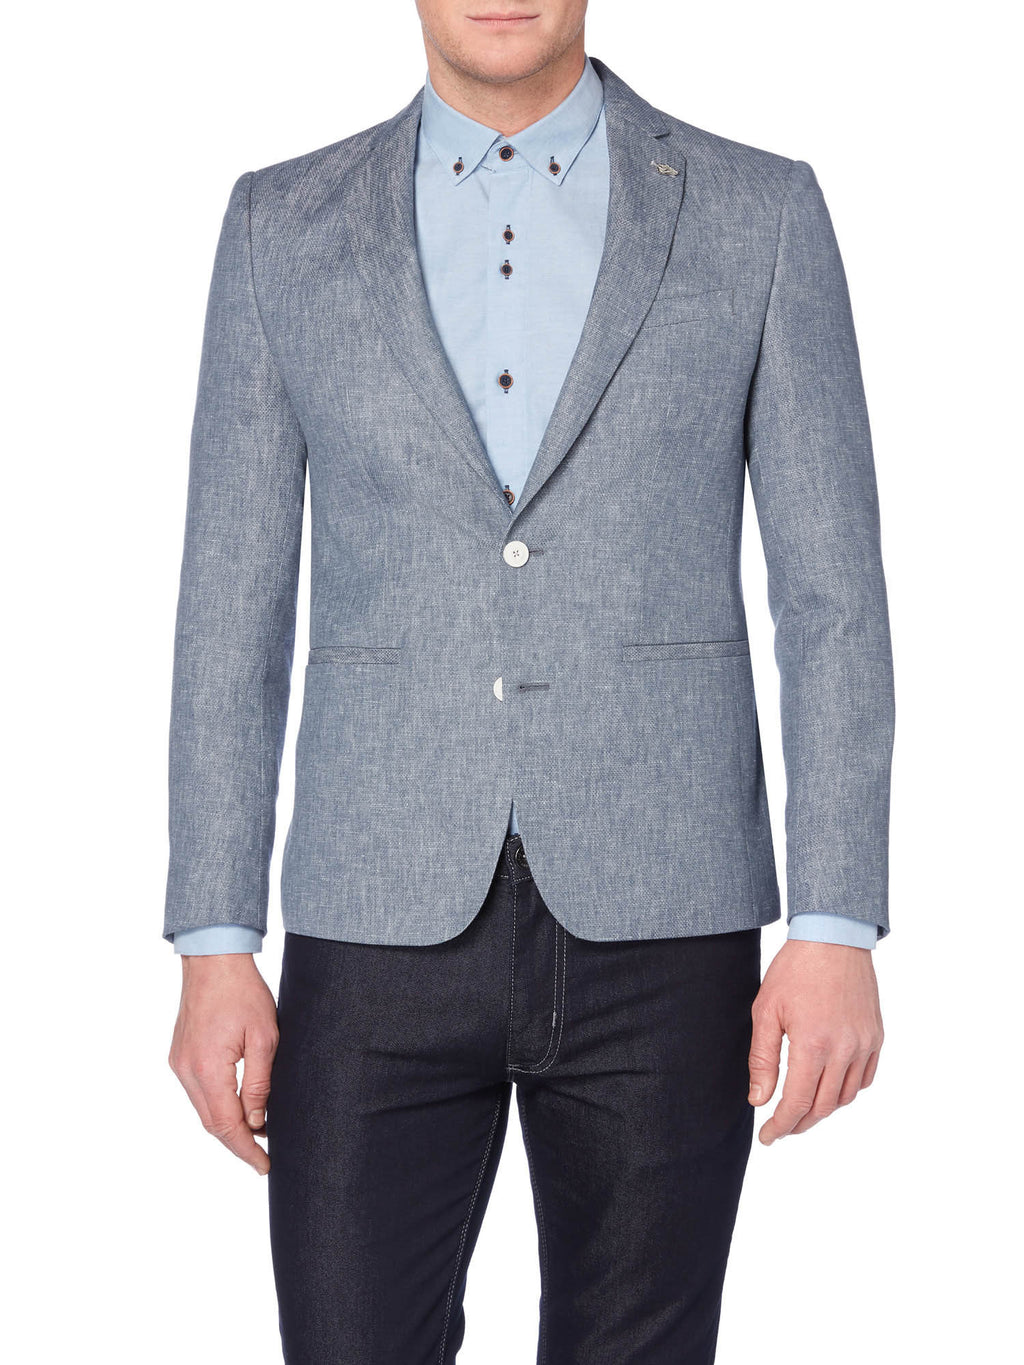 A blue linen blend blazer from Remus Uomo 10758/23